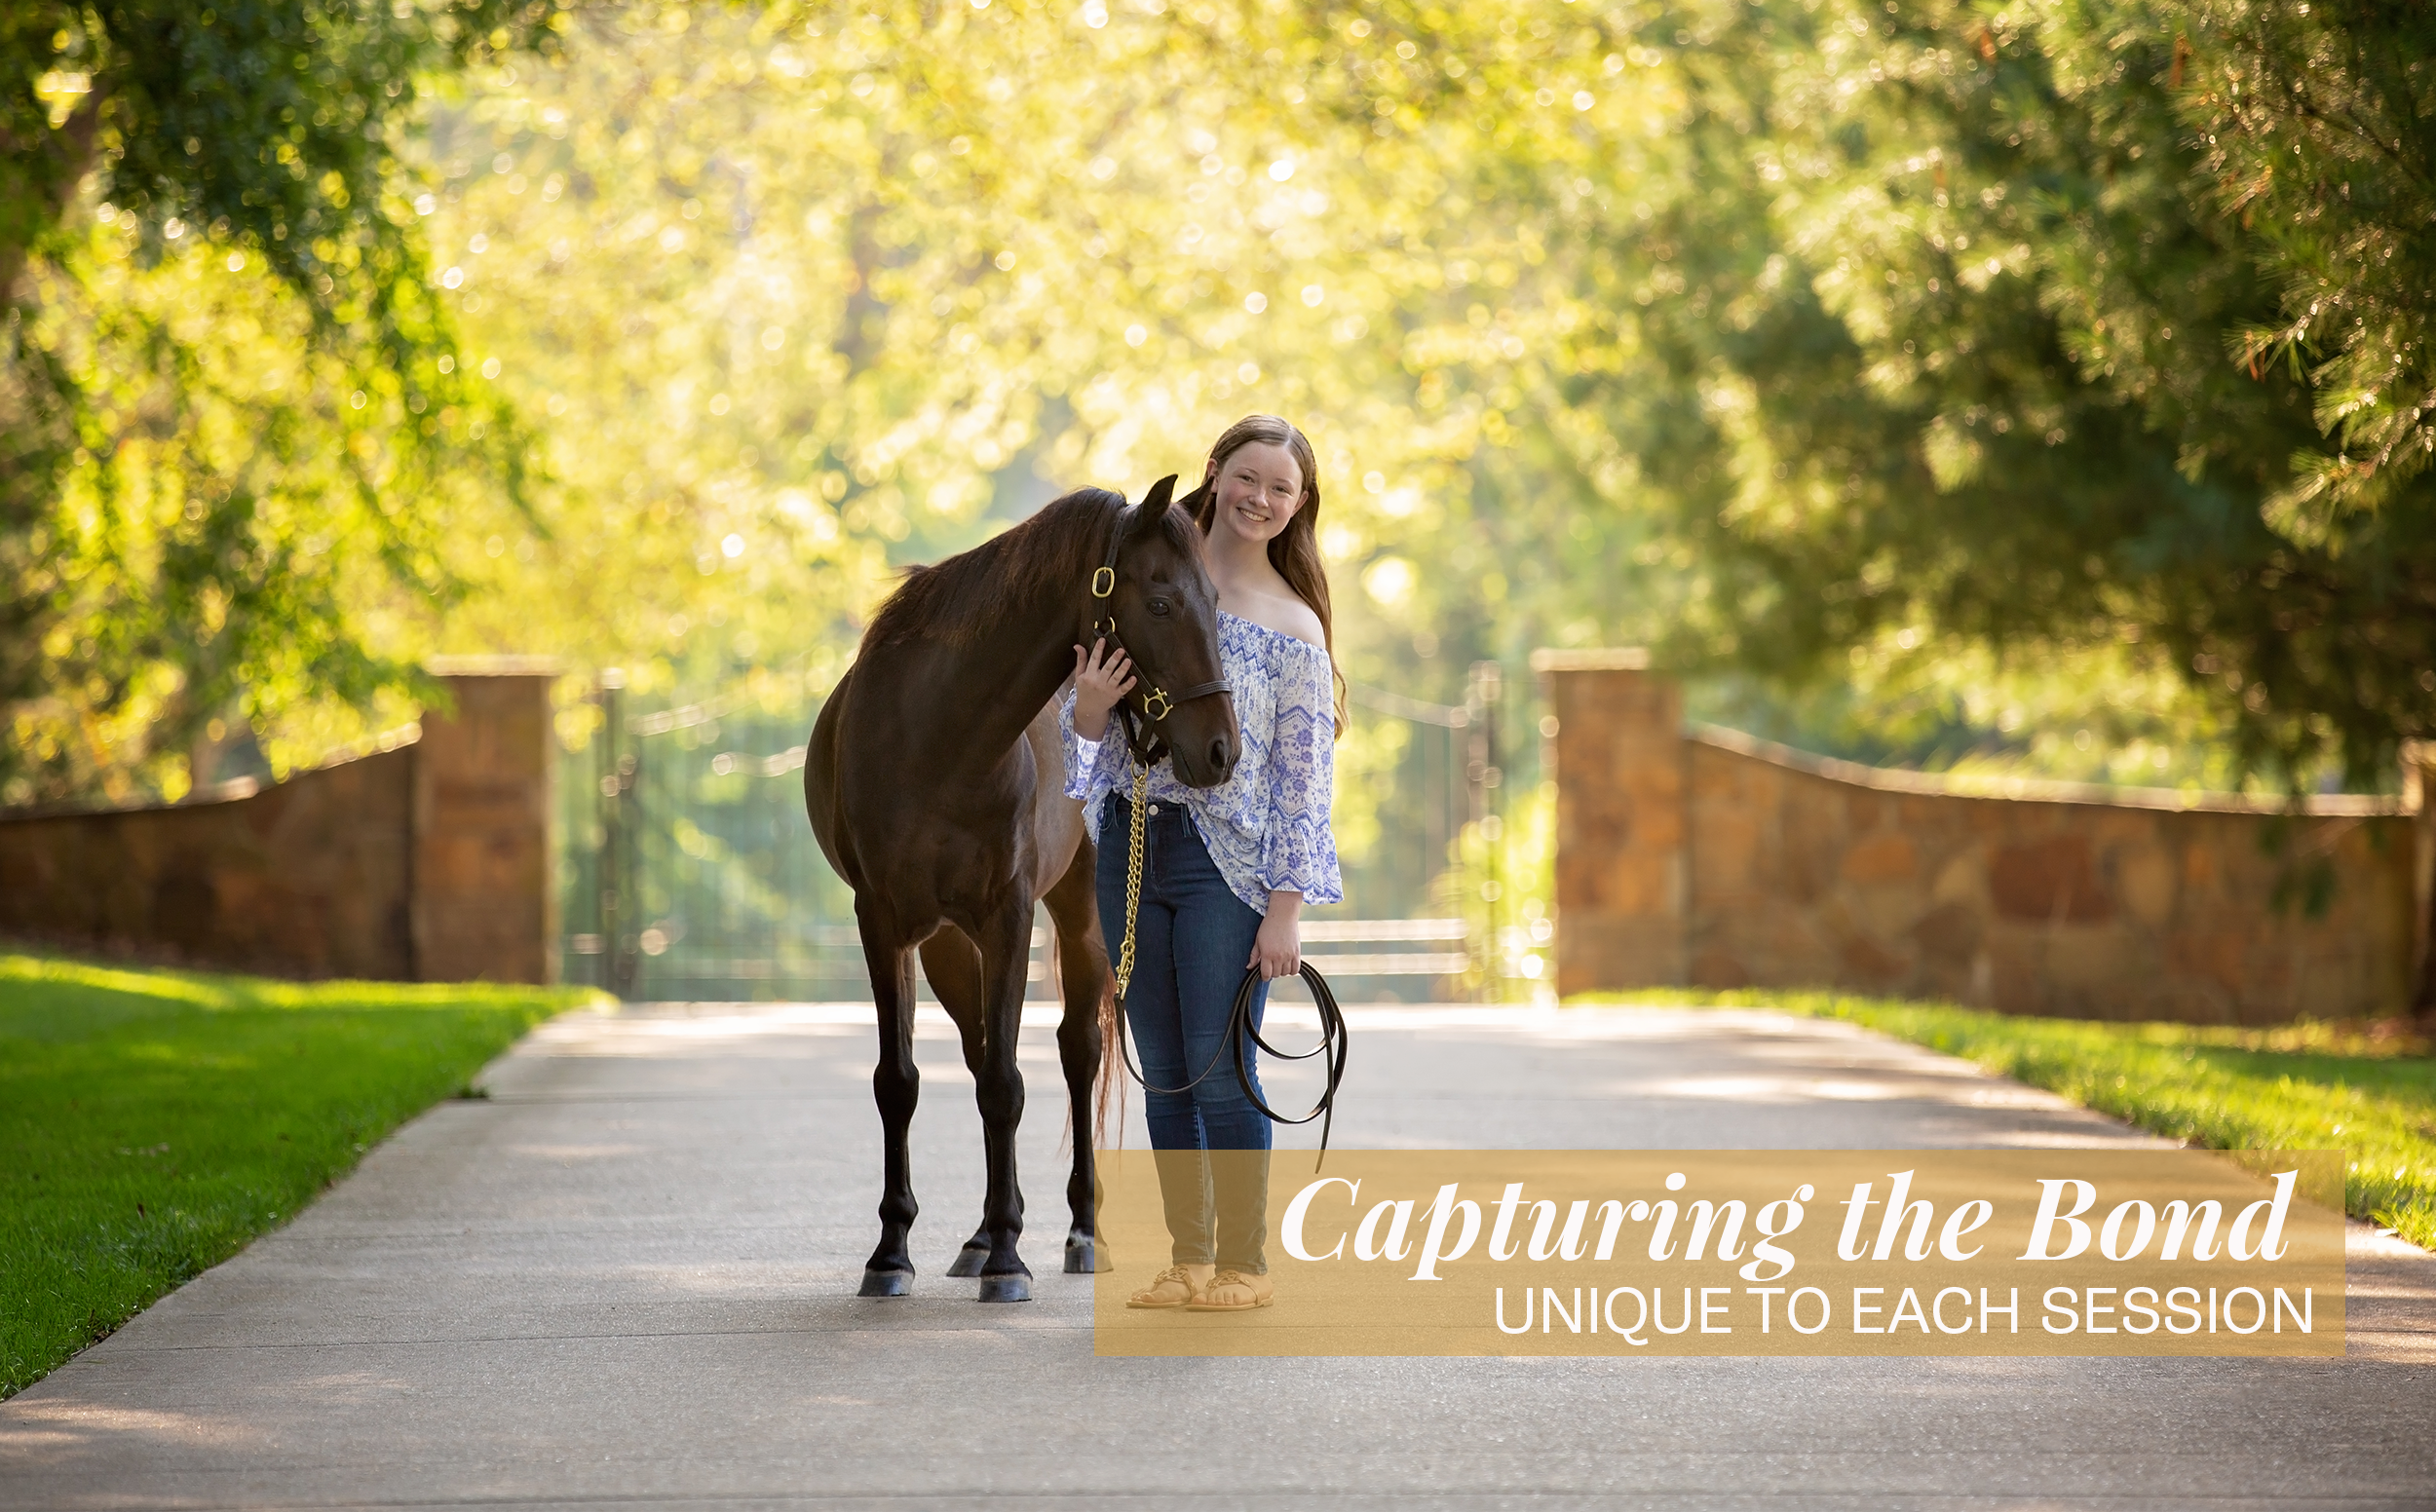 A beautiful outdoor summer scene of a young girl wearing jeans and an off the shoulder shirt holding her hackney pony on a tree lined paved path in a gated drive.